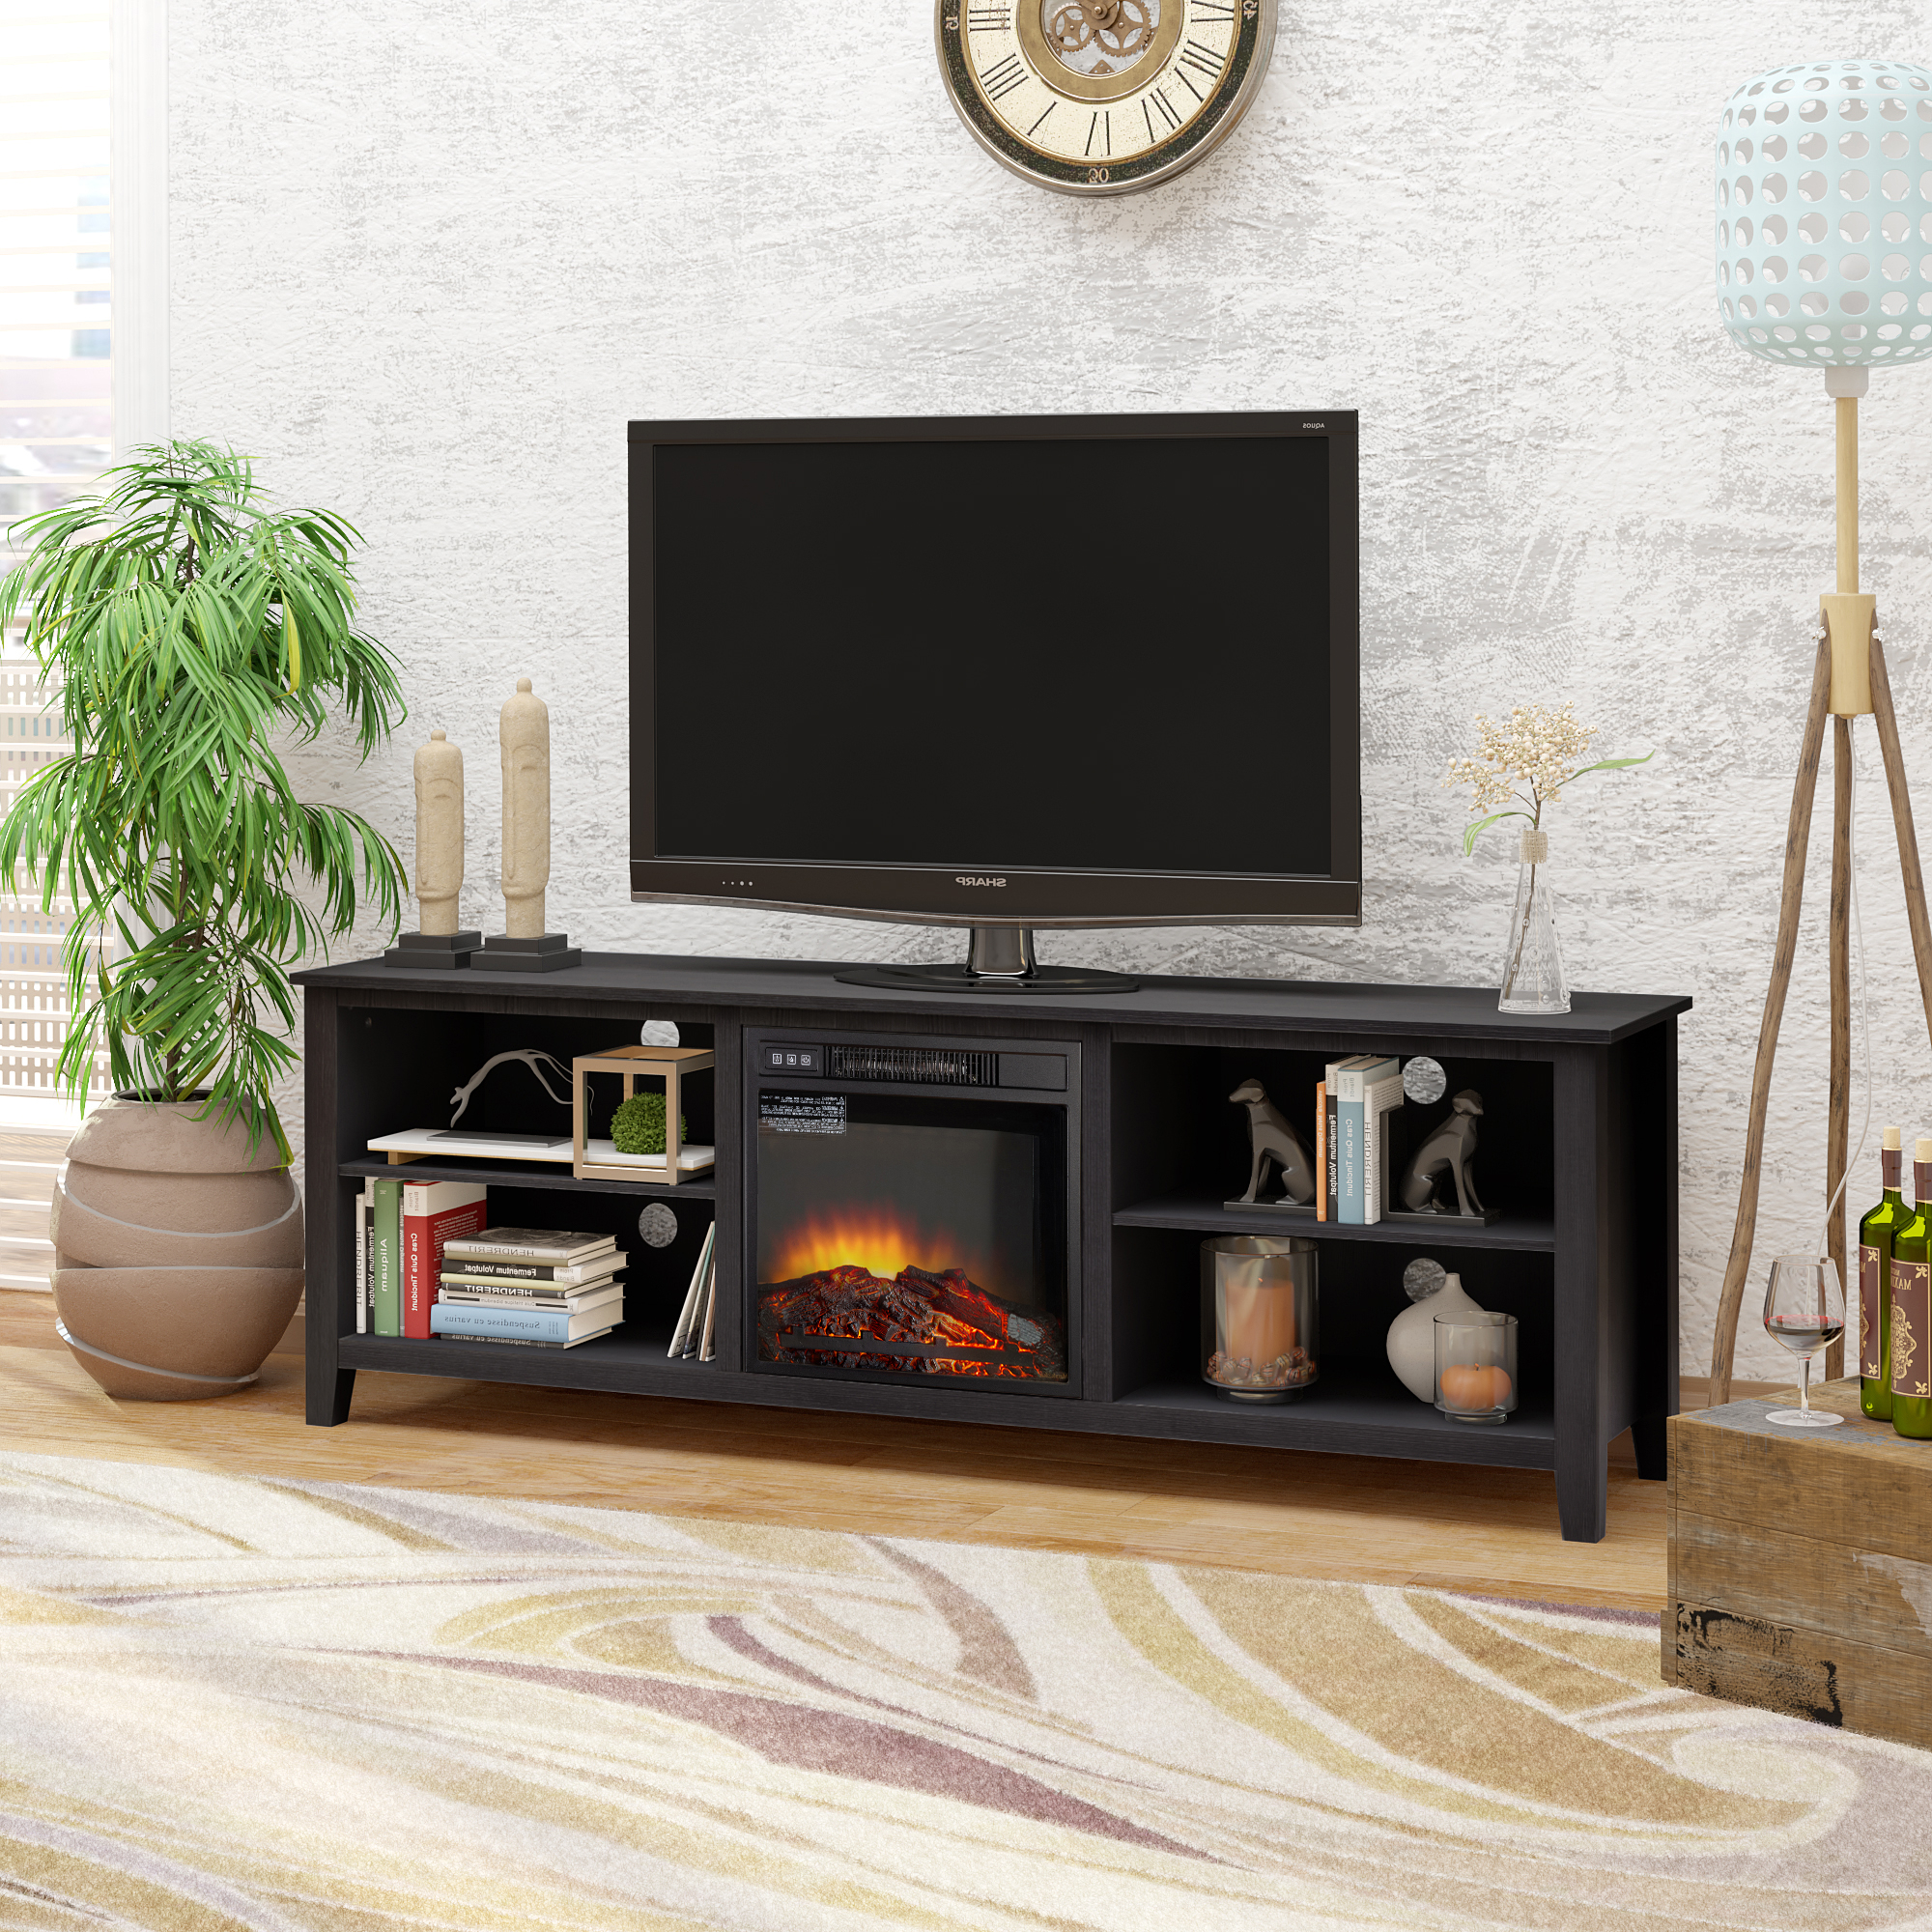 """70"""" Tv Stand Fireplace Media Console For Tvs Up To 80 With Regard To Glass Tv Stands For Tvs Up To 70"""" (View 2 of 20)"""